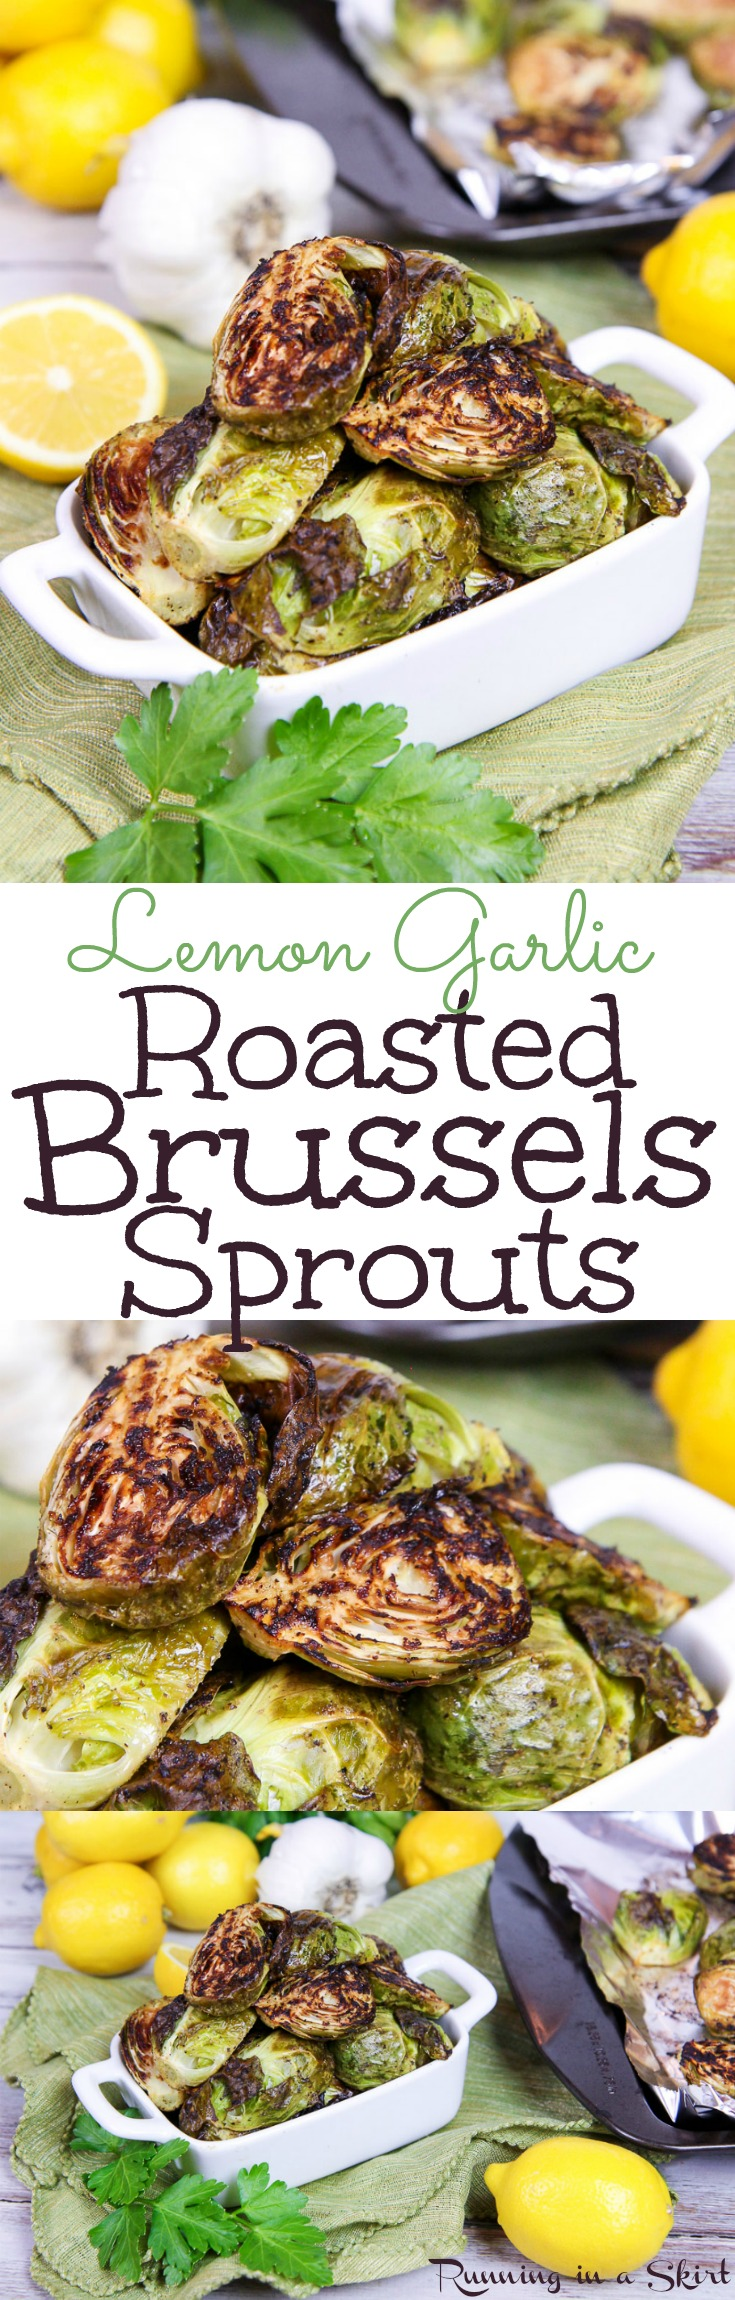 The Best Crispy Oven Roasted Brussels Sprouts with garlic recipe - seasoned with lemon - vegan friendly! These easy, healthy, quick and simple sprouts are the perfect veggies side dish with only a handful of ingredients.  Also vegetarian, low carb, gluten free, 21 day fix, whole 30 and paleo.  / Running in a Skirt